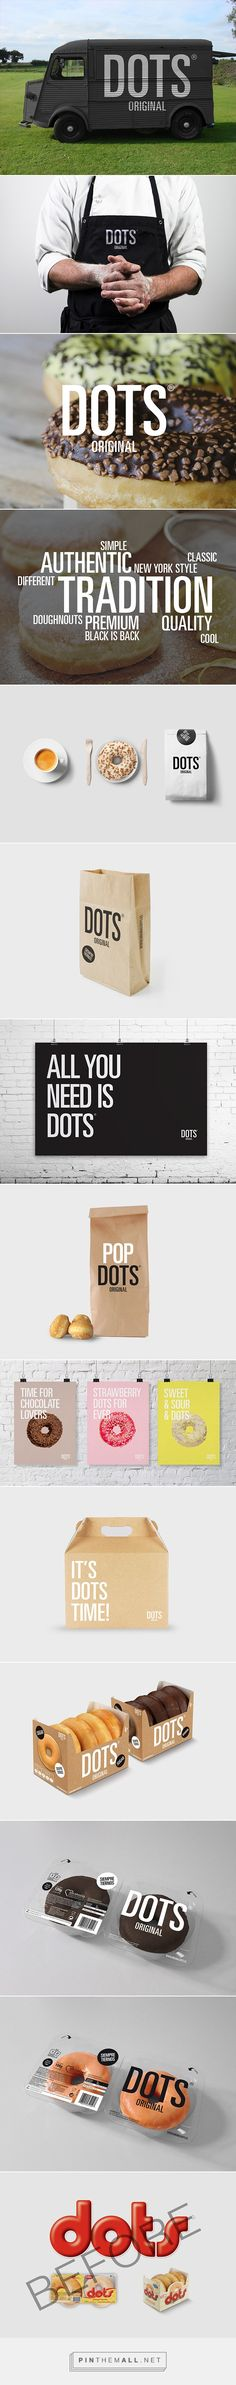 New brand identity for Dots, Spain´s top selling doughnuts and bakery brand PD